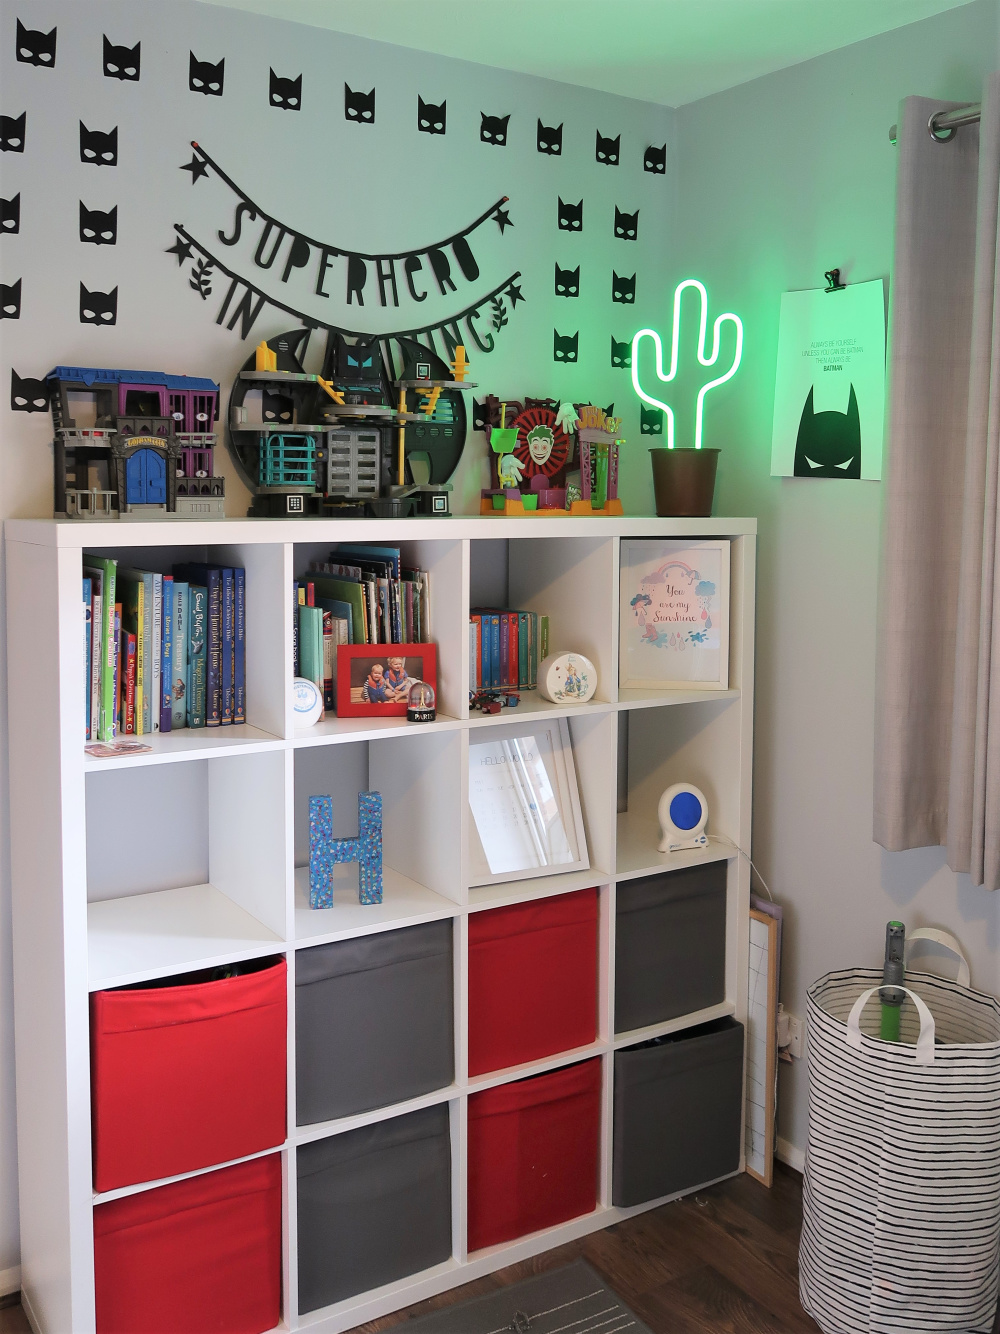 Child Superhero bedroom